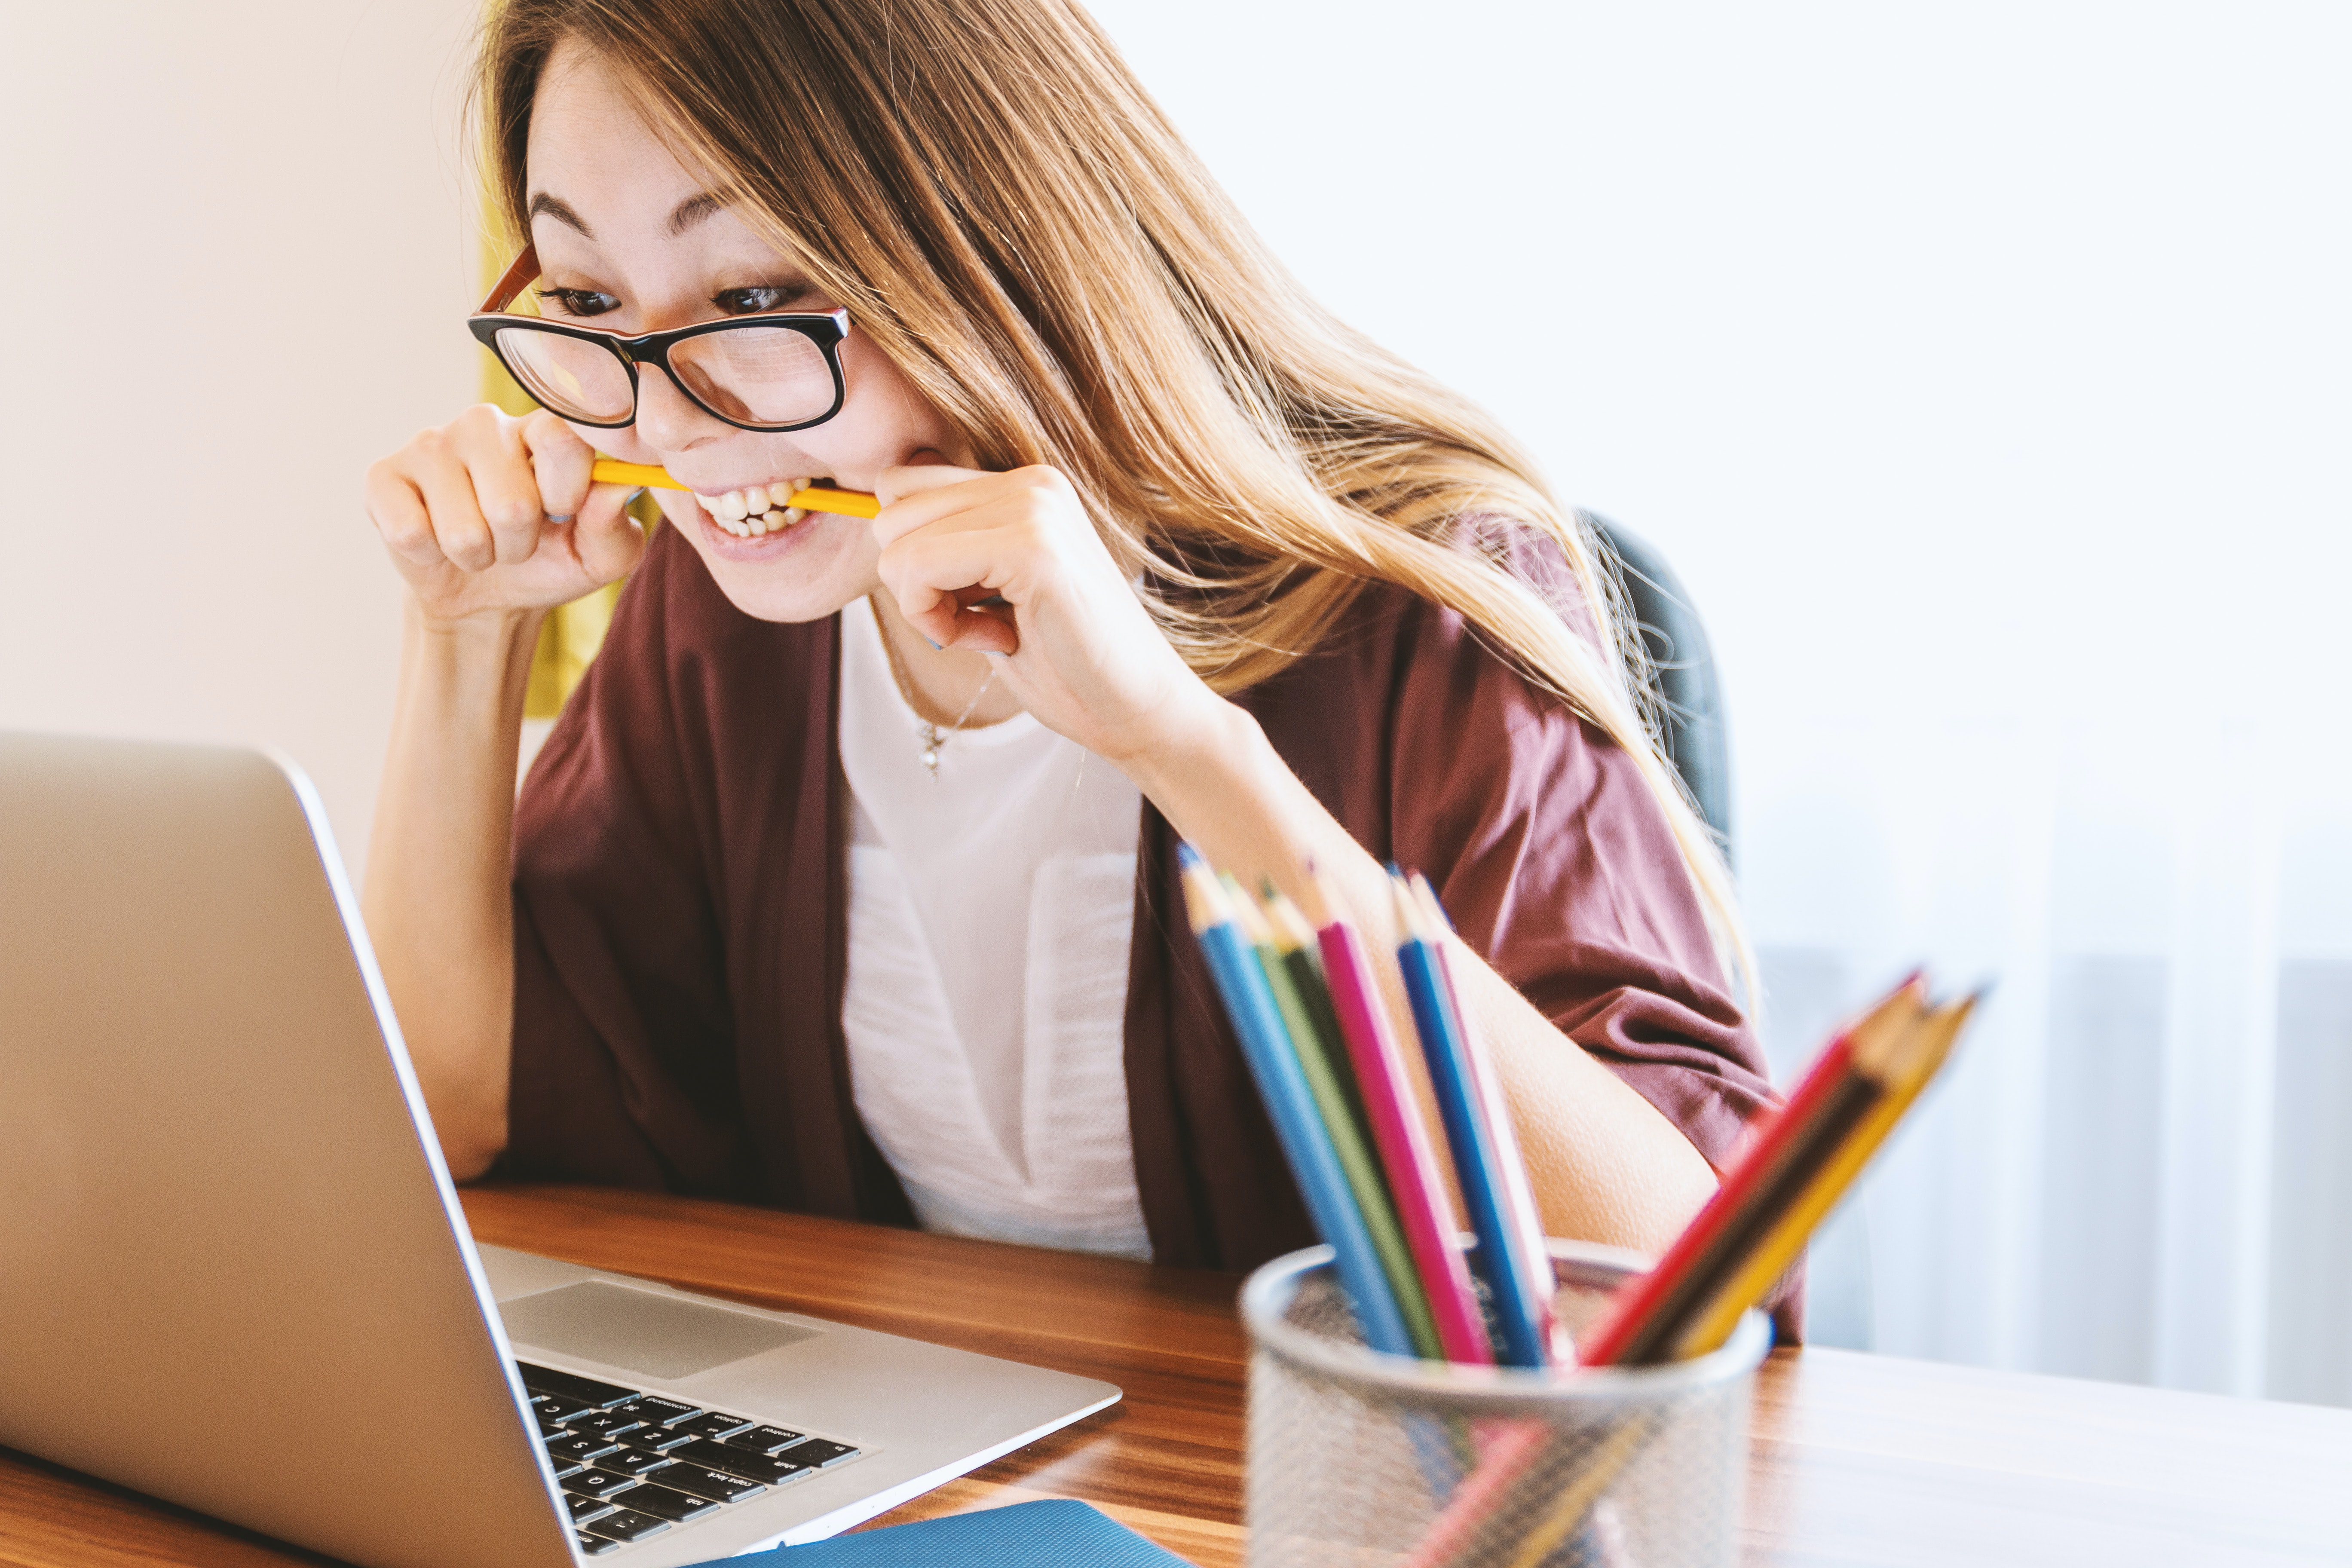 woman-biting-pencil-in-front-of-macbook